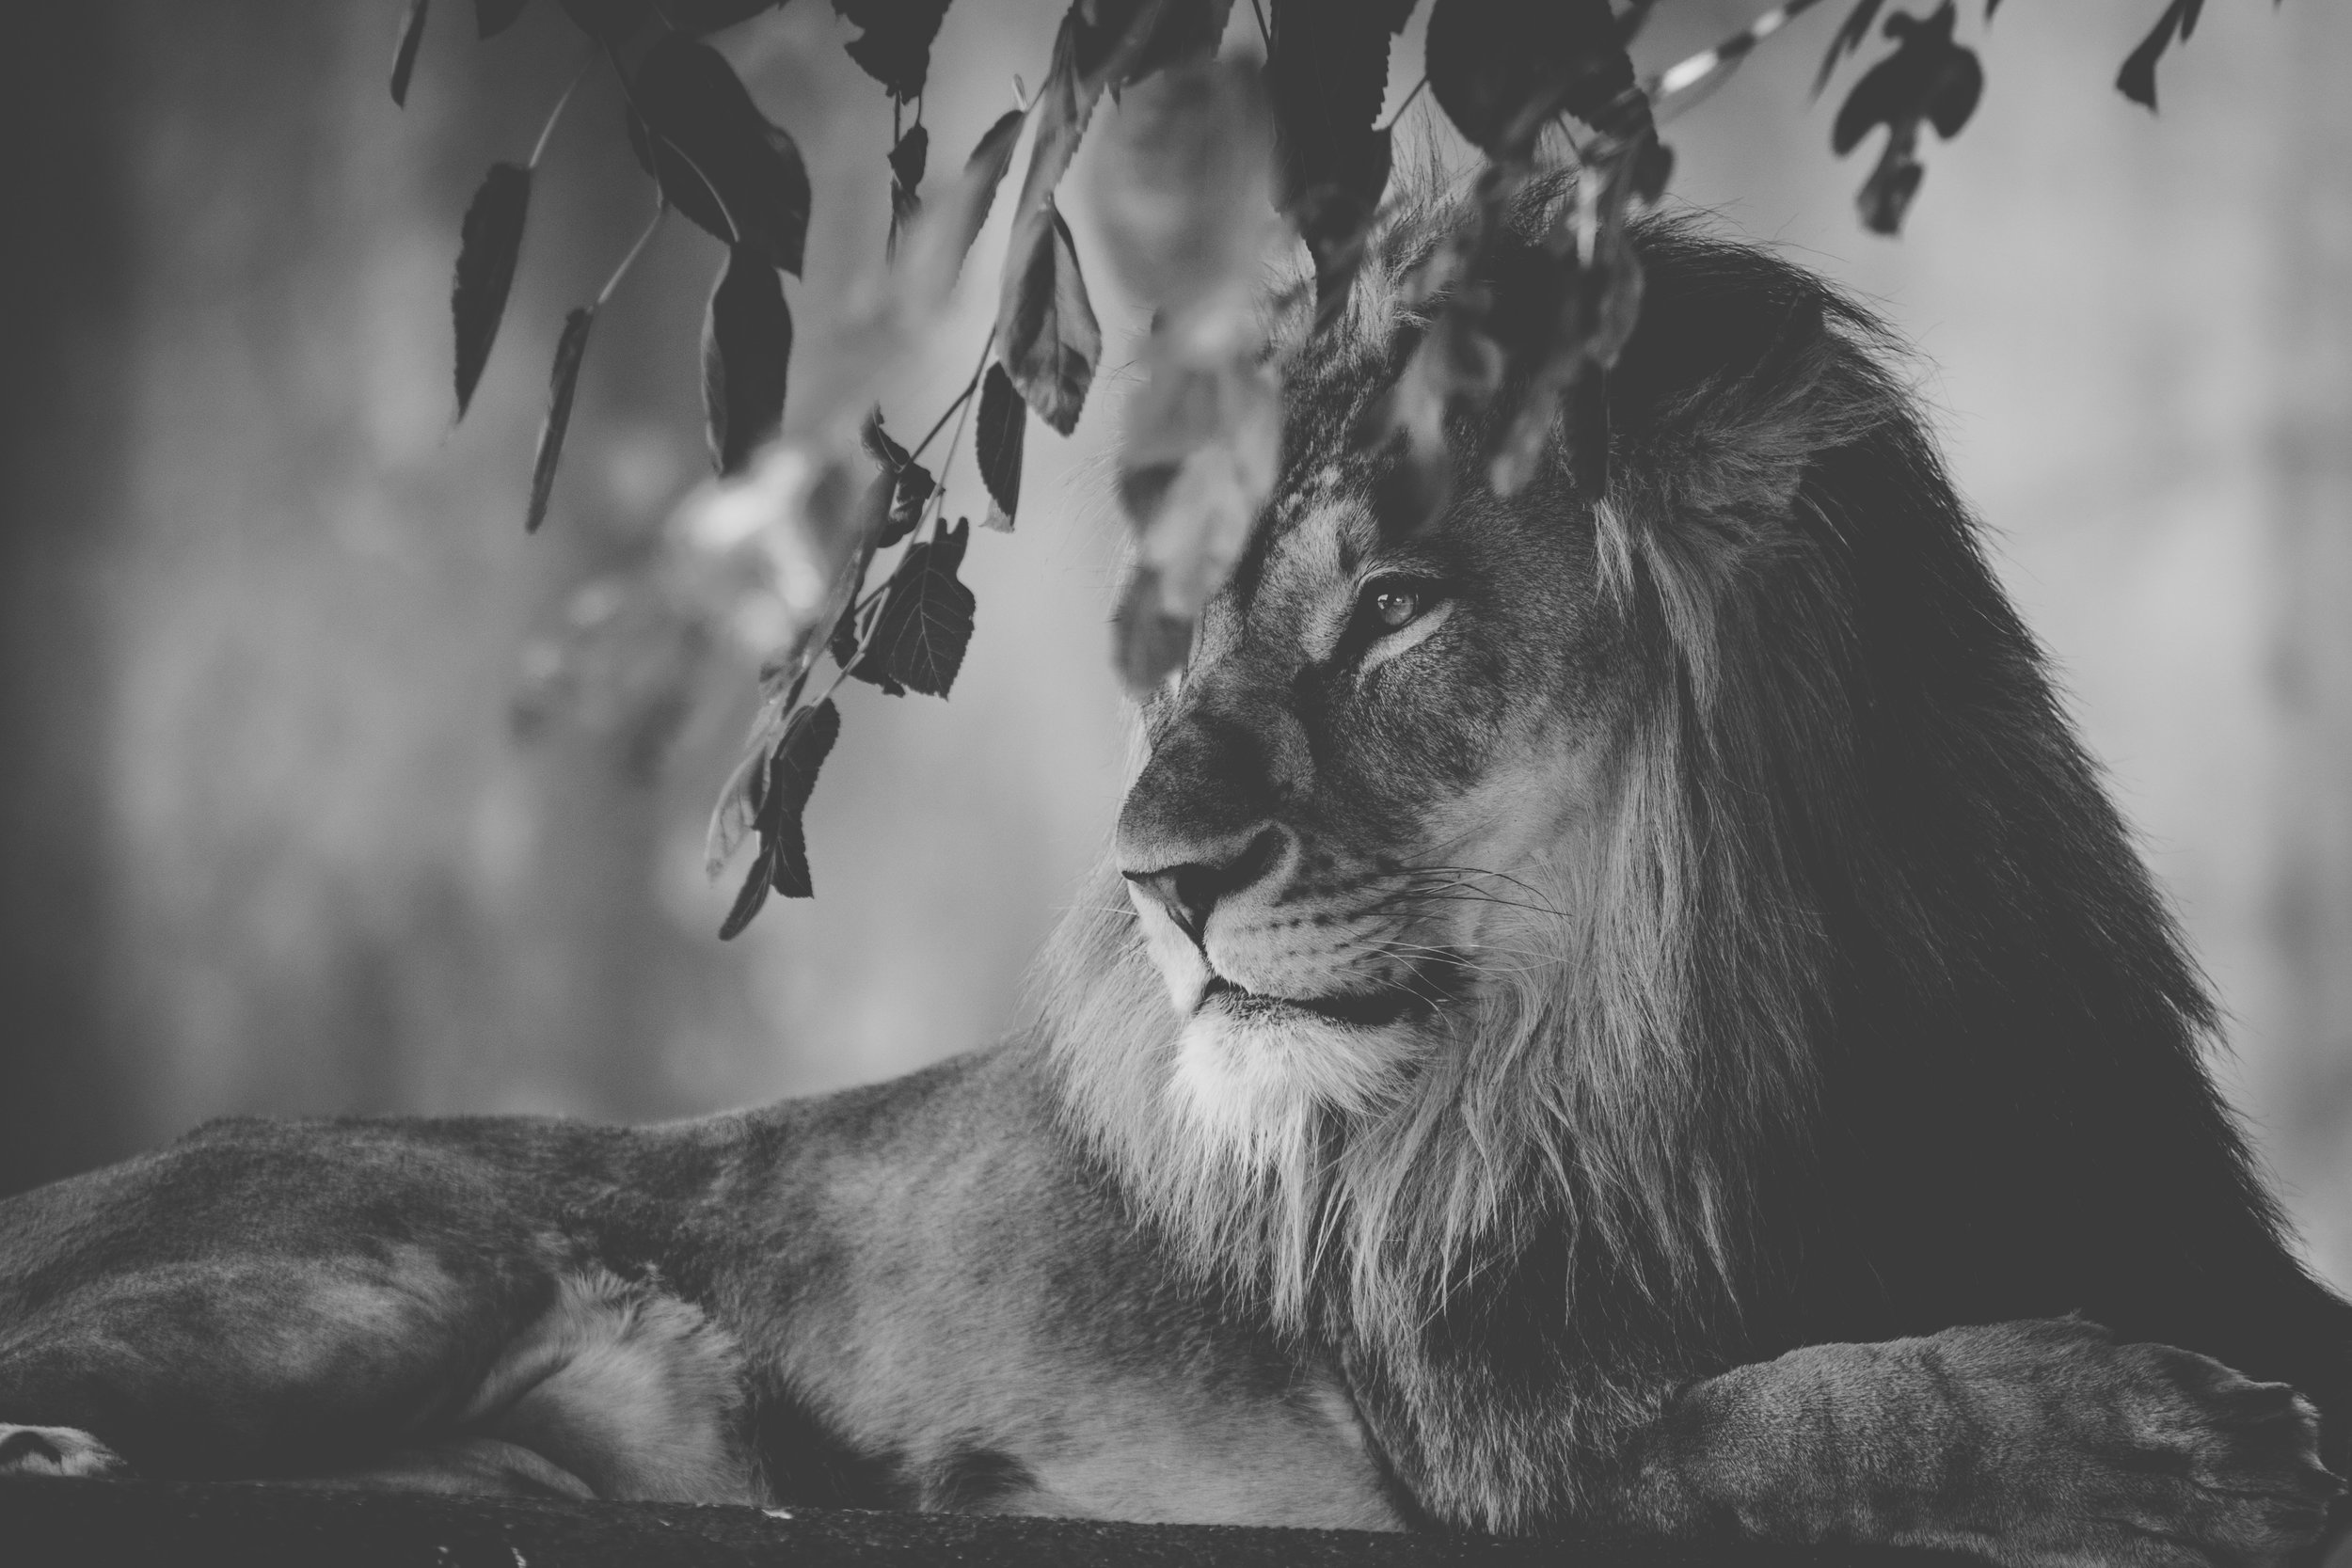 My Lion Story - For those who are in Christ, we should always have a